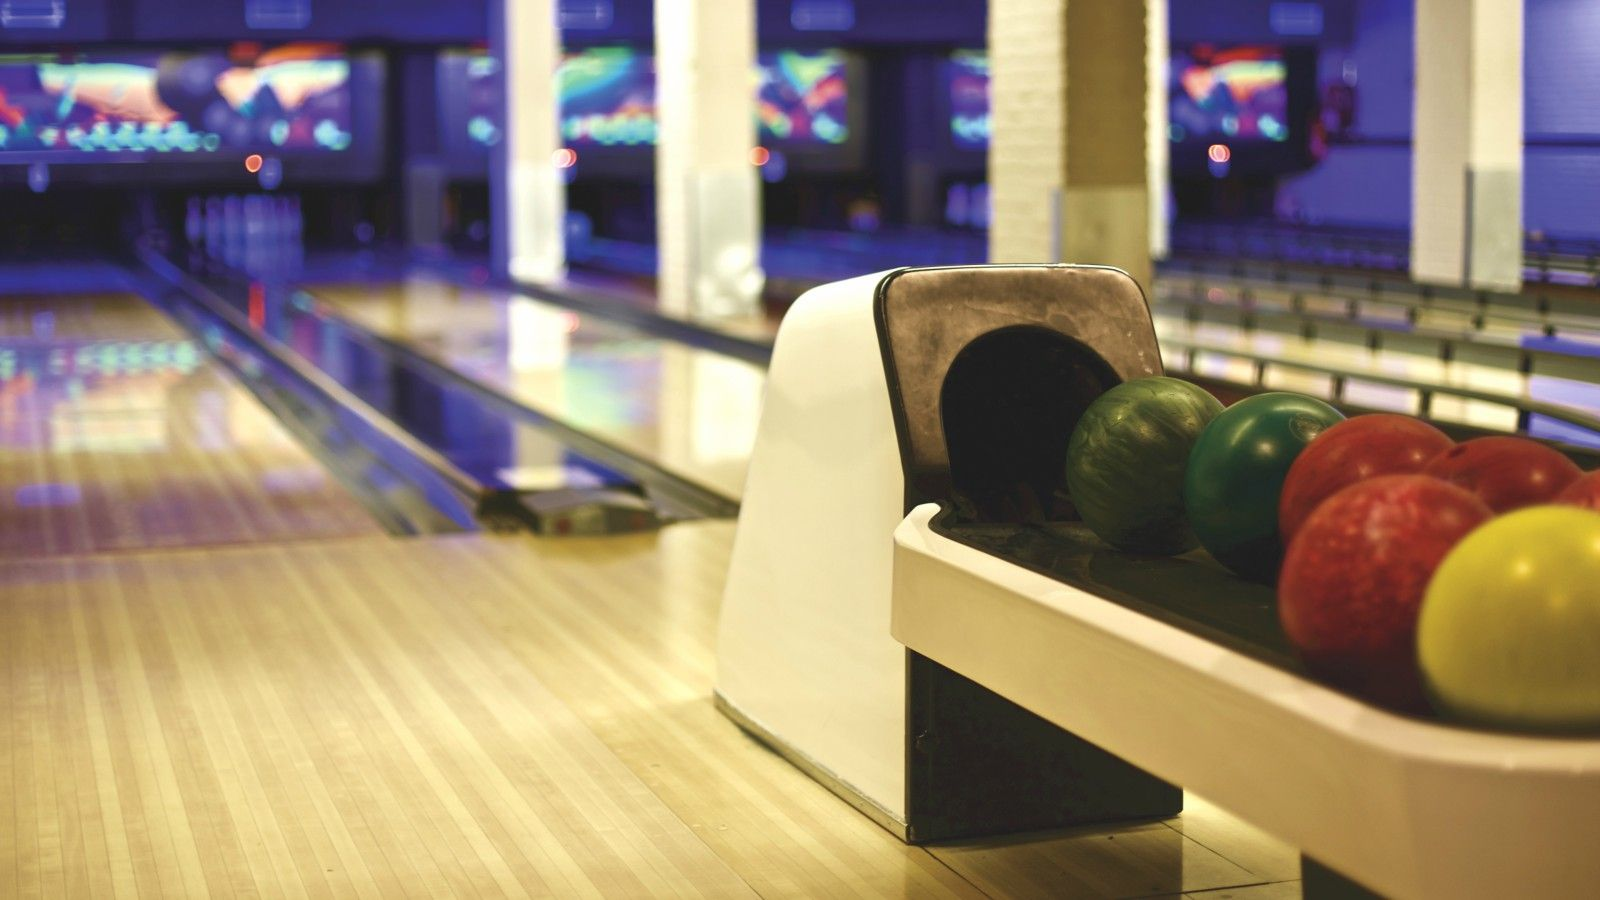 Things to do in Times Square - Bowling